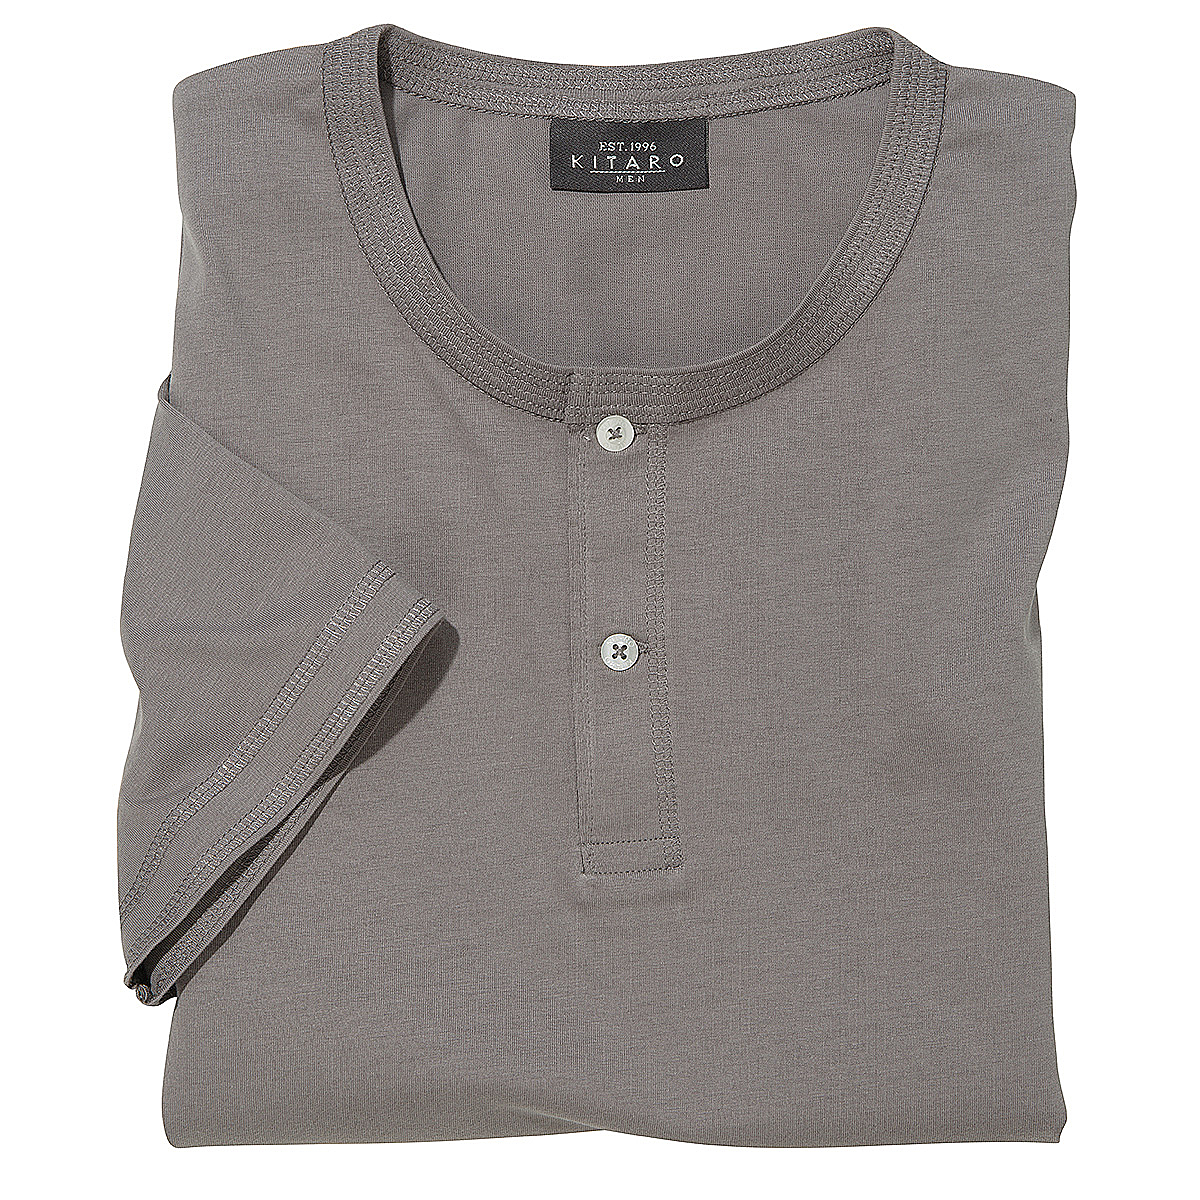 kitaro t shirt mit knopfleiste serafino farbe asphaltgrau gr enspezialist m nnermode. Black Bedroom Furniture Sets. Home Design Ideas